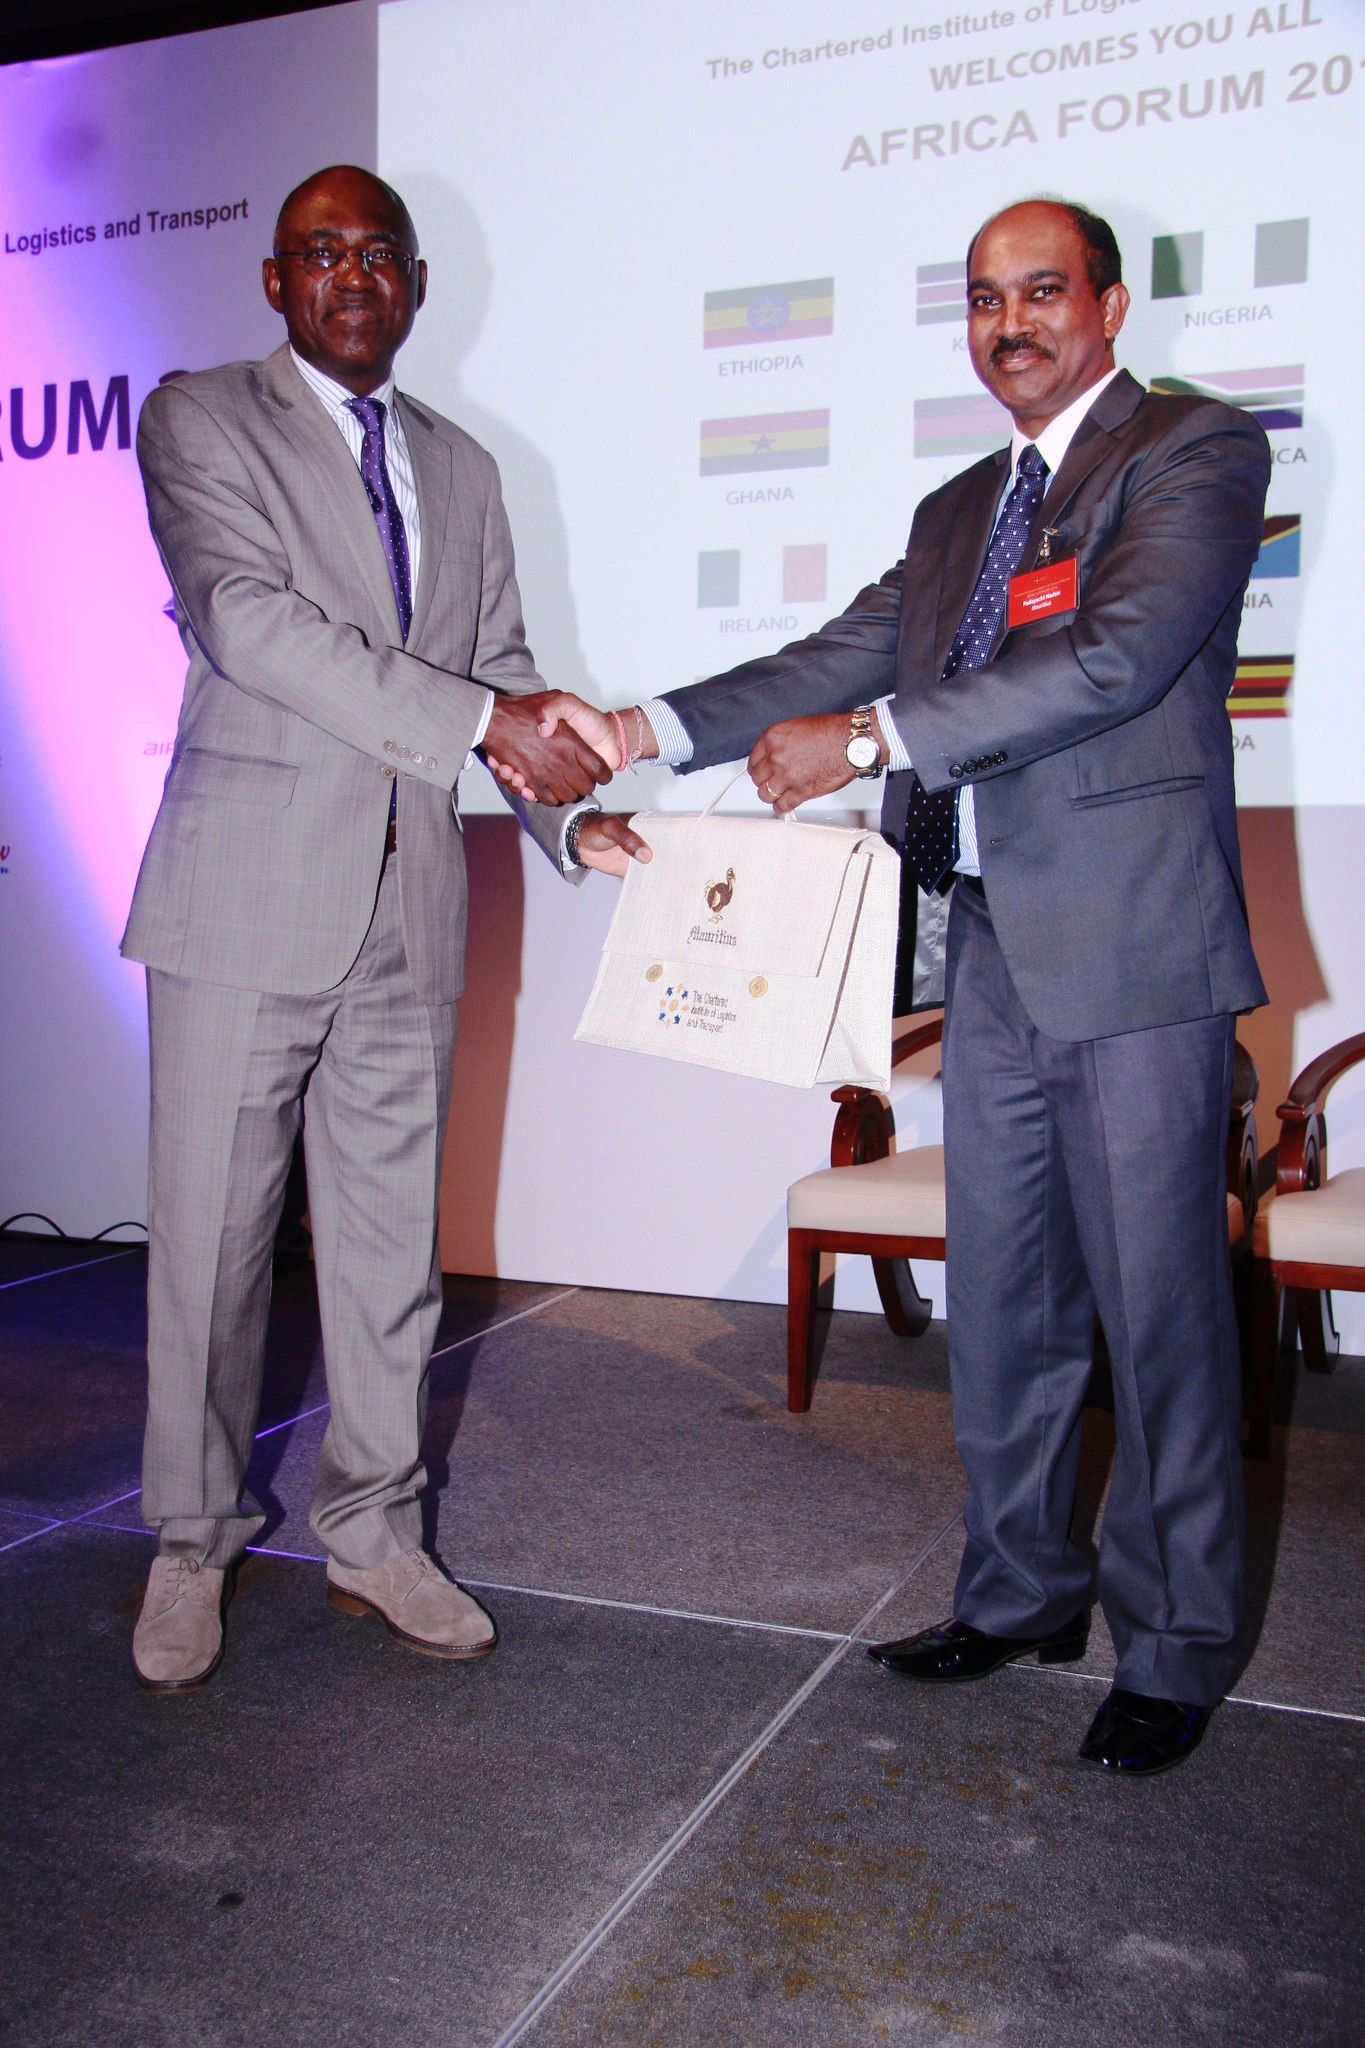 President CILTN & IVP, Africa, Maj Gen UT Usman (Rtd), receiving a souvenir from the Chairman of CILT, Mauritius, Mr. Naden Padayachi